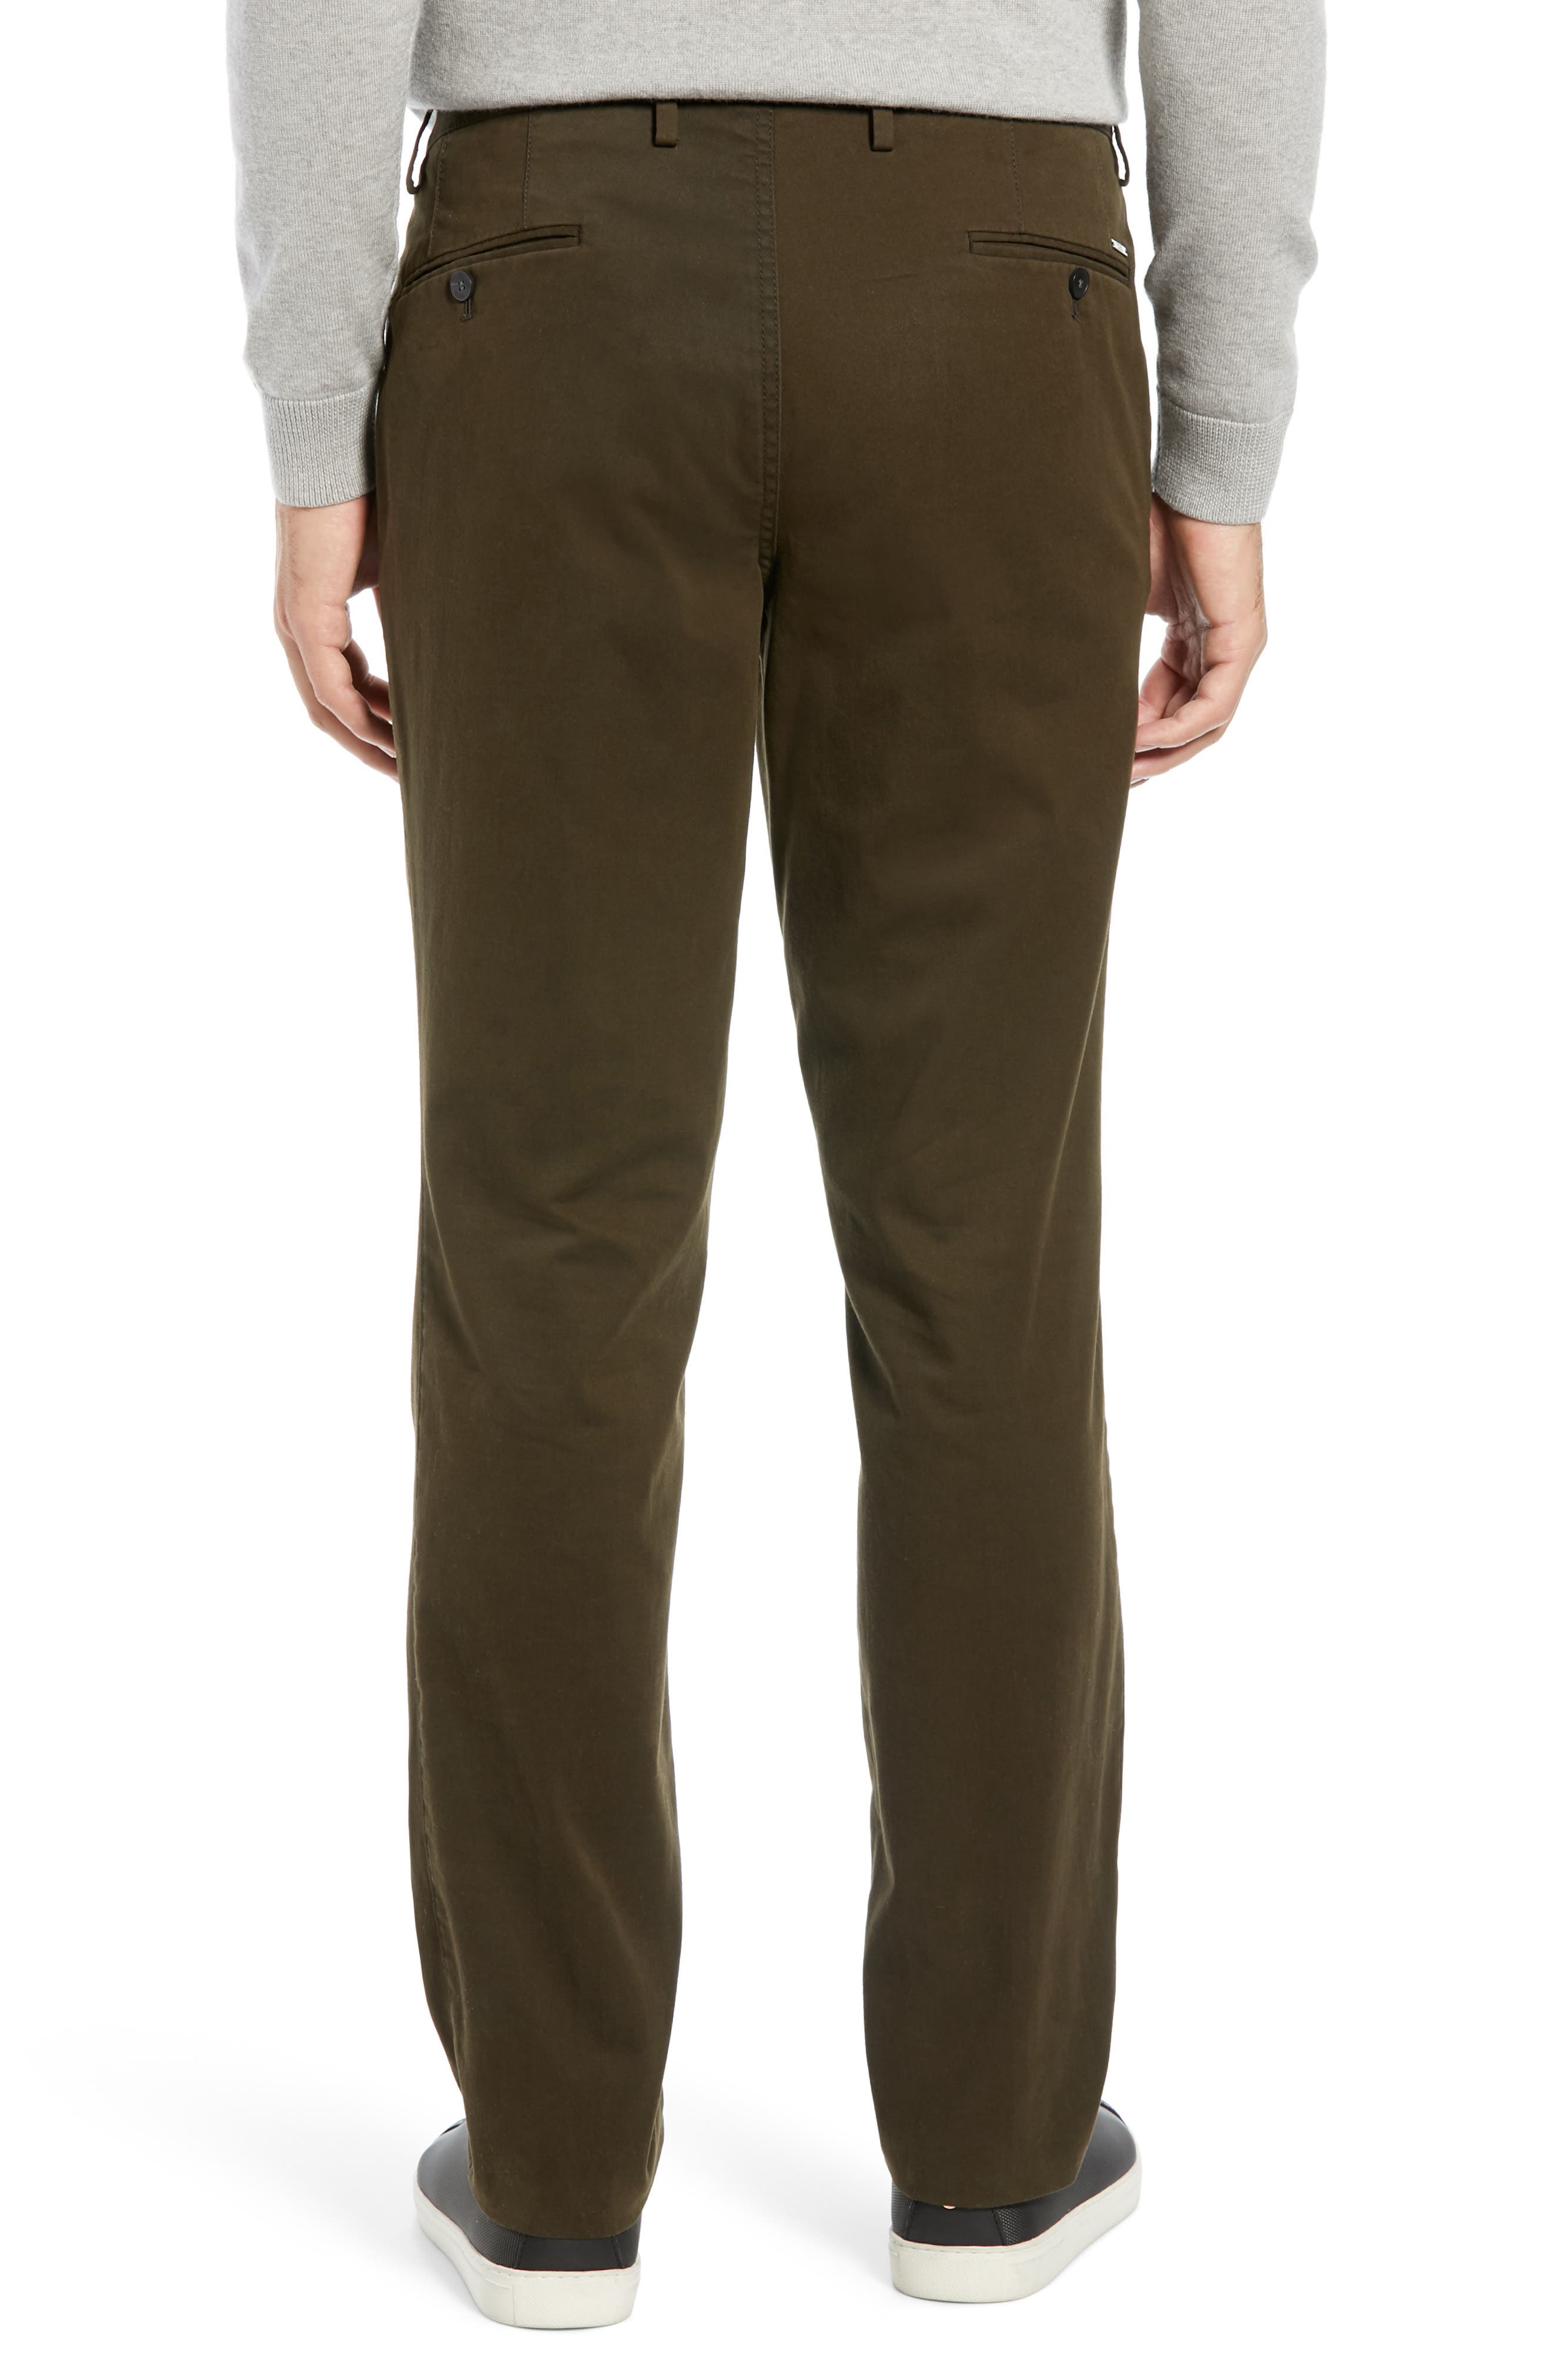 Stanino Flat Front Stretch Cotton Solid Trousers,                             Alternate thumbnail 2, color,                             OLIVE